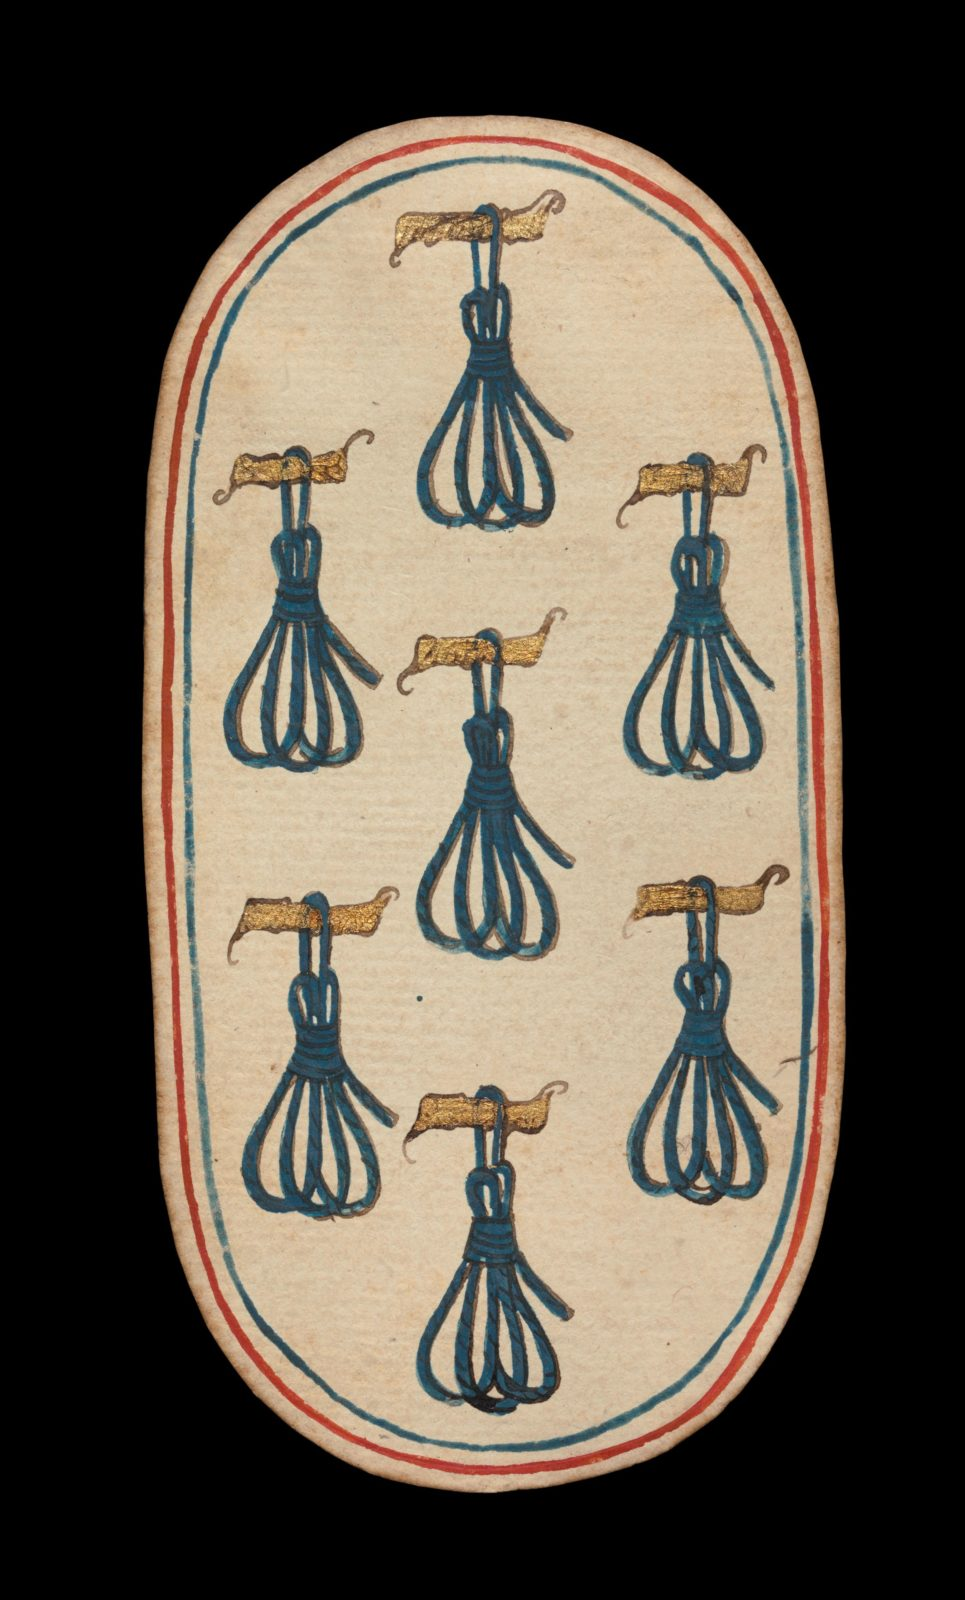 7 of Tethers, from The Cloisters Playing Cards